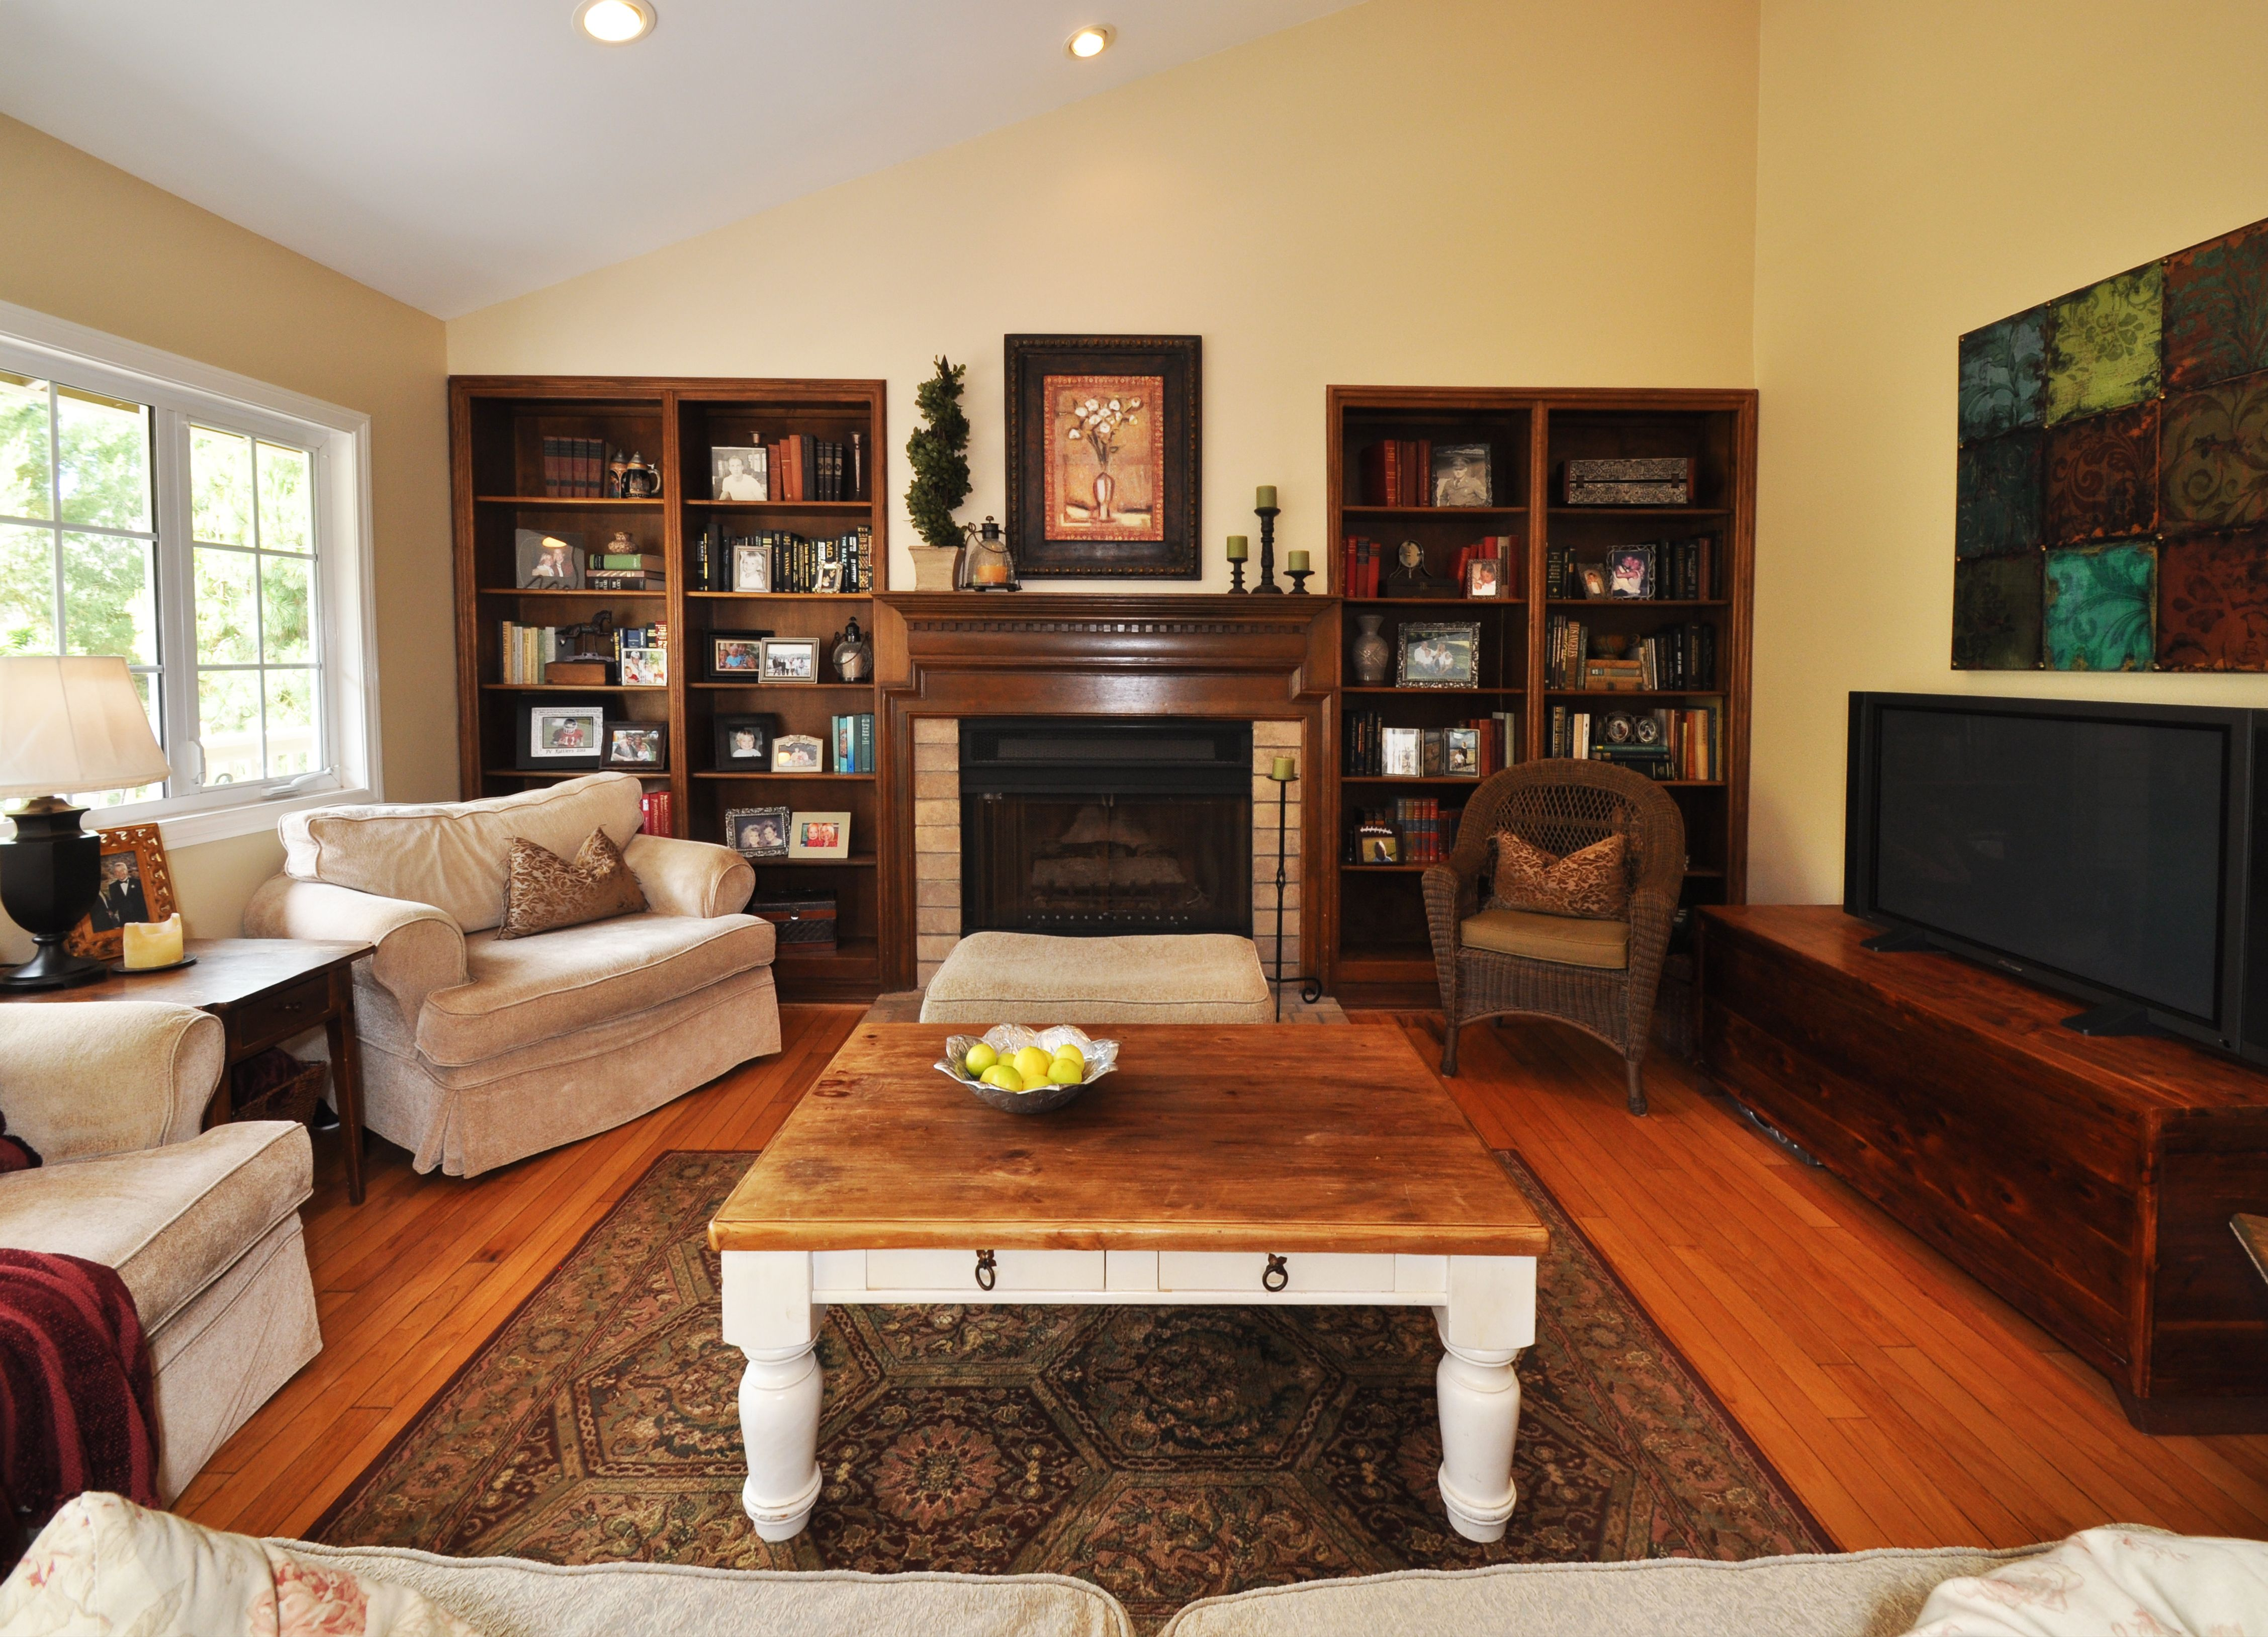 Amusing Wood Coffee Table White Legs On Great Living Carpet Over Wooden Flooring And Nice White Single Fabric Sofas With Rustic Fireplace Woods Mantel And Rusti